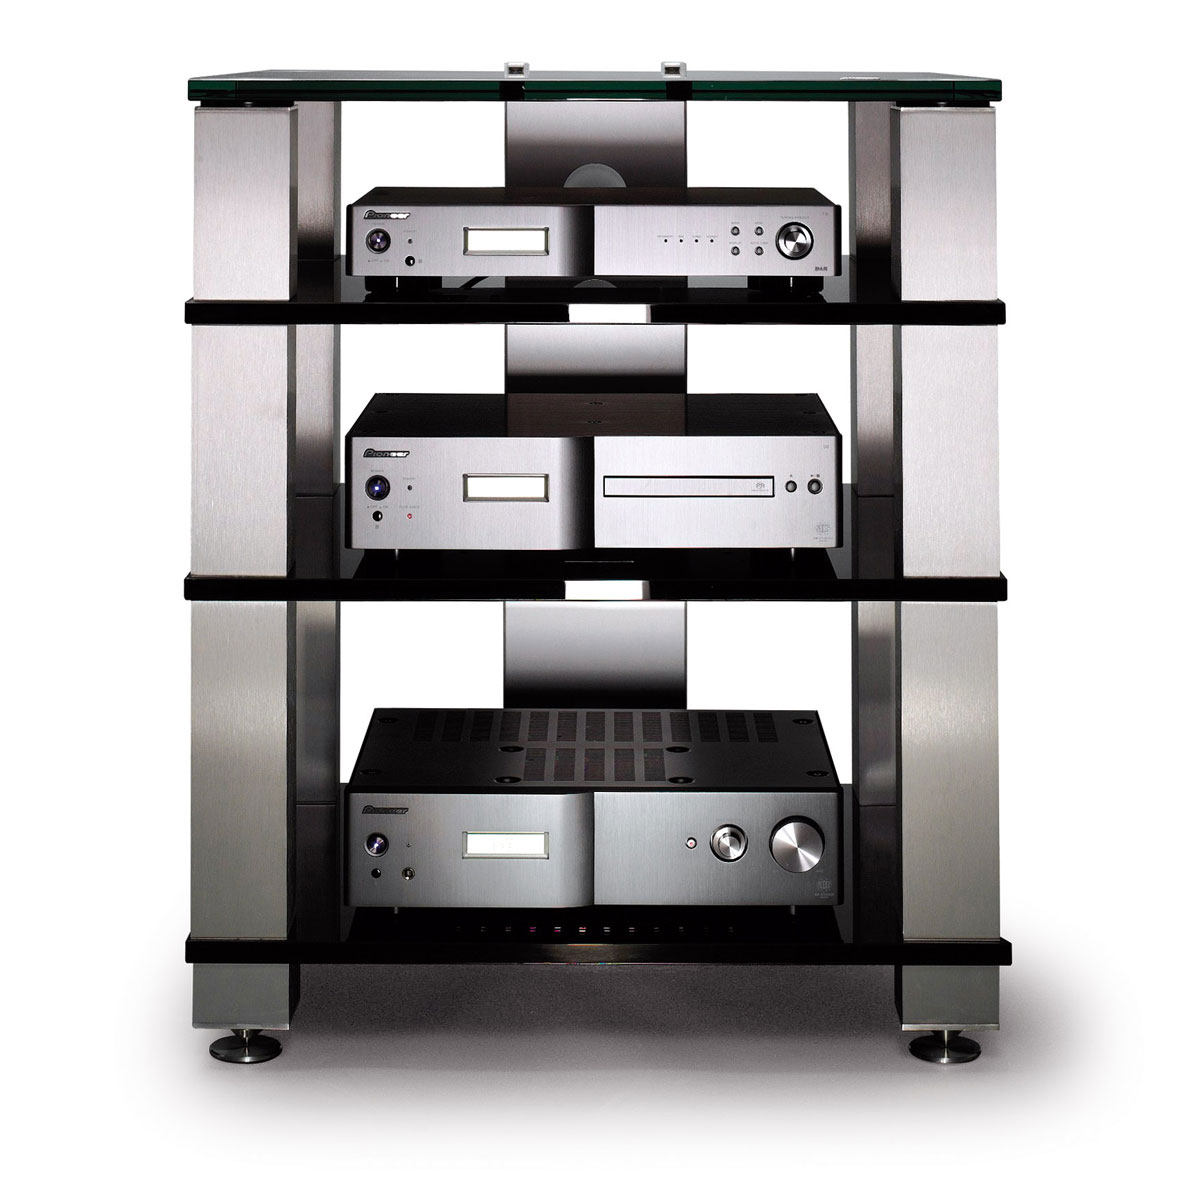 spectral high end he682 he683 he684 hifi rack bei hifi tv. Black Bedroom Furniture Sets. Home Design Ideas